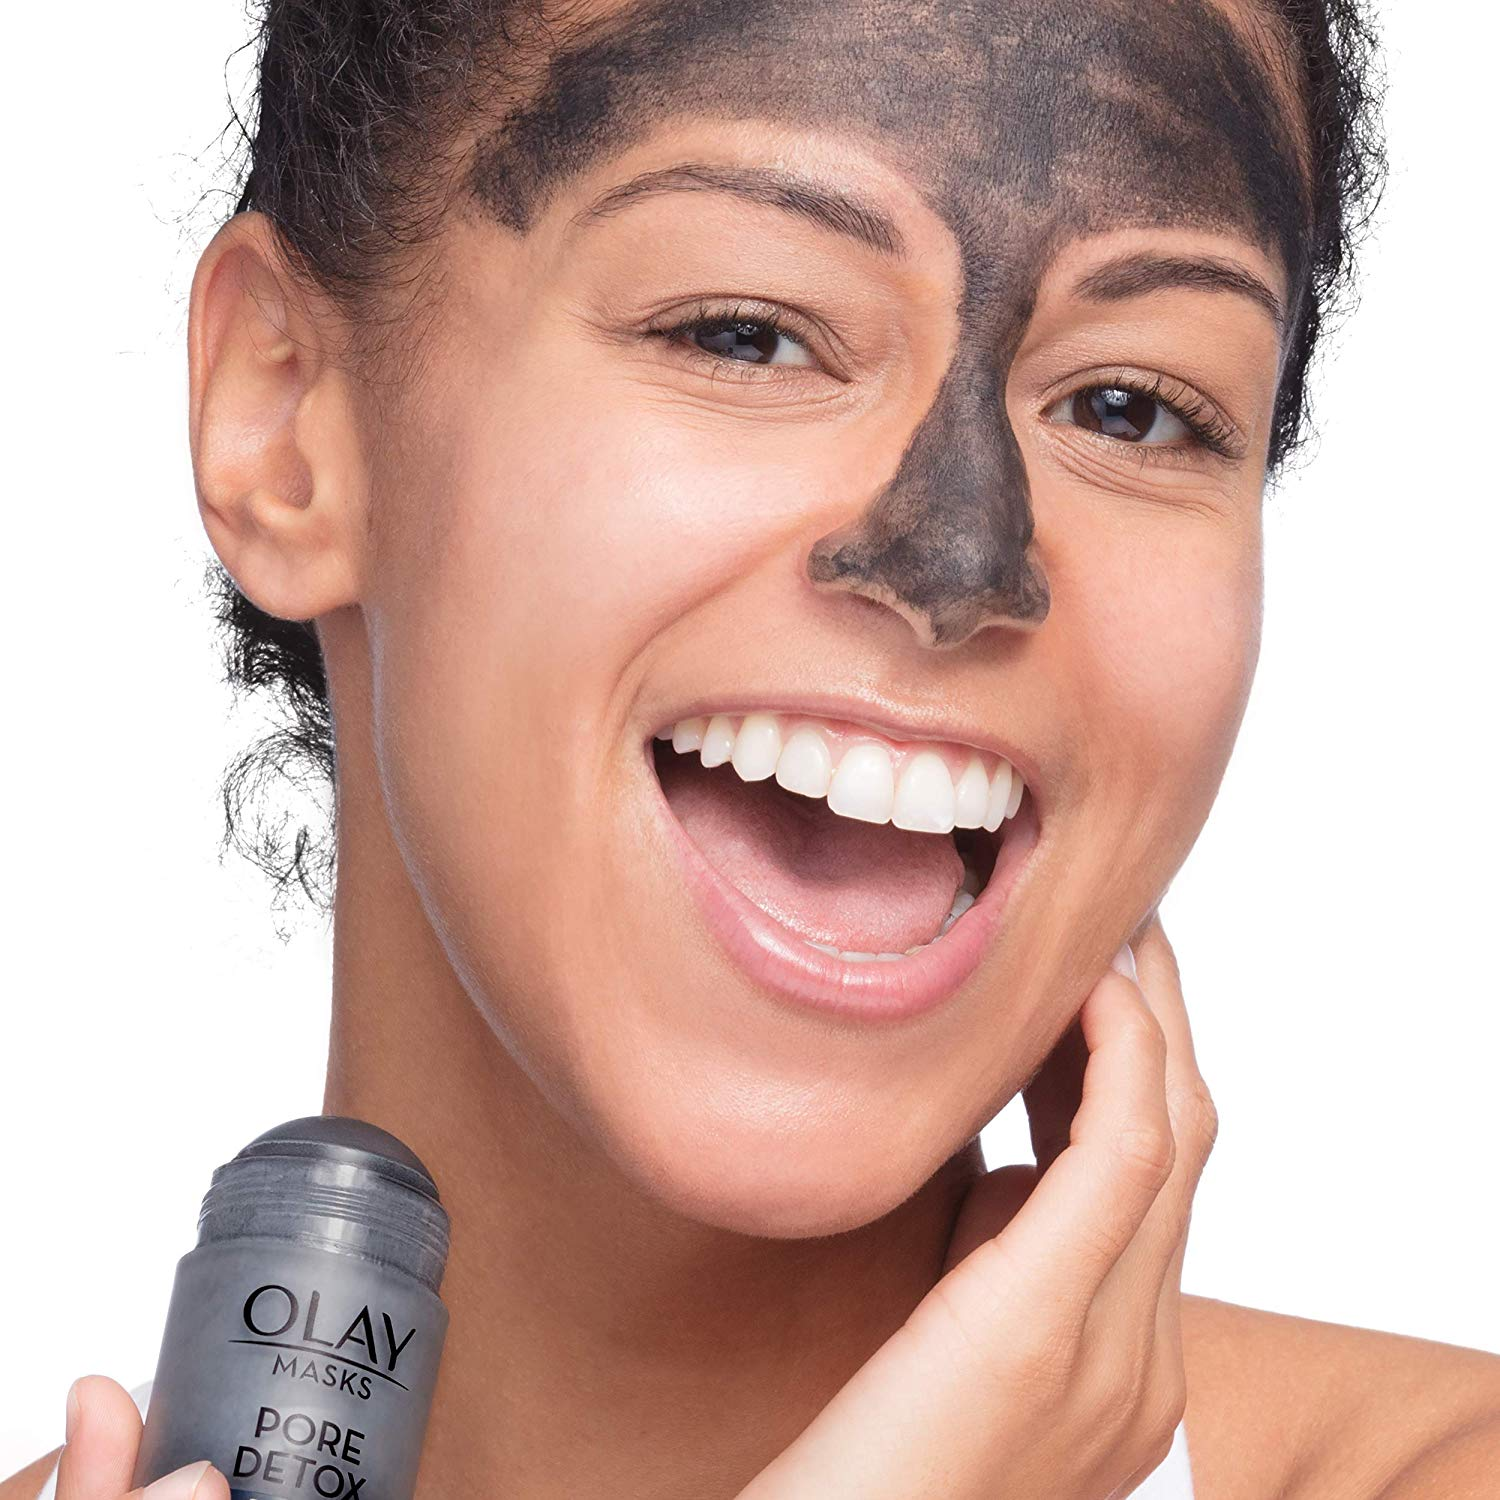 Olay Clay Mask Stick